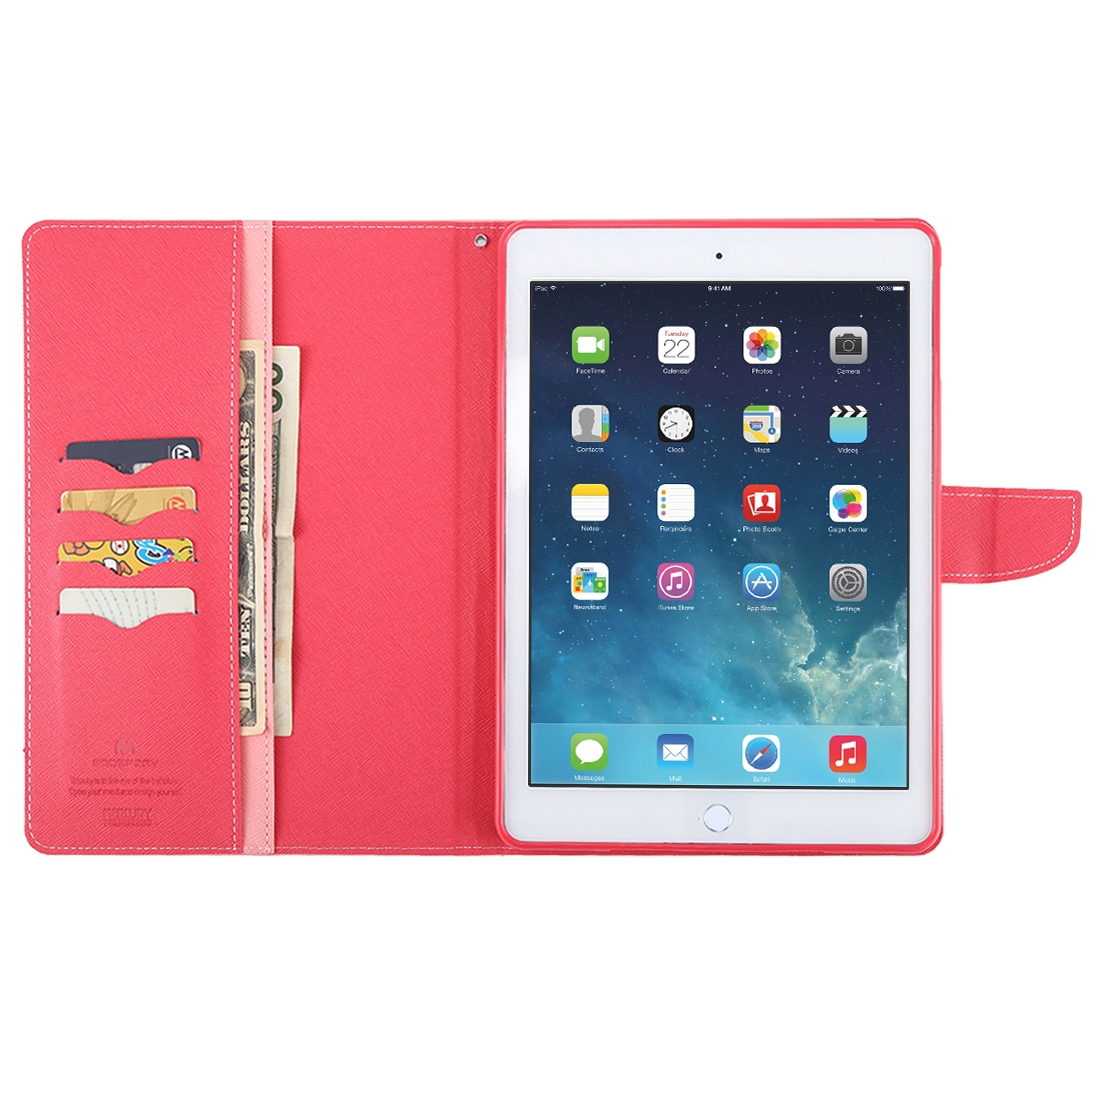 iPad Air Case Cross Texture Leather Case with Sleeve & Slim Profile (Pink)